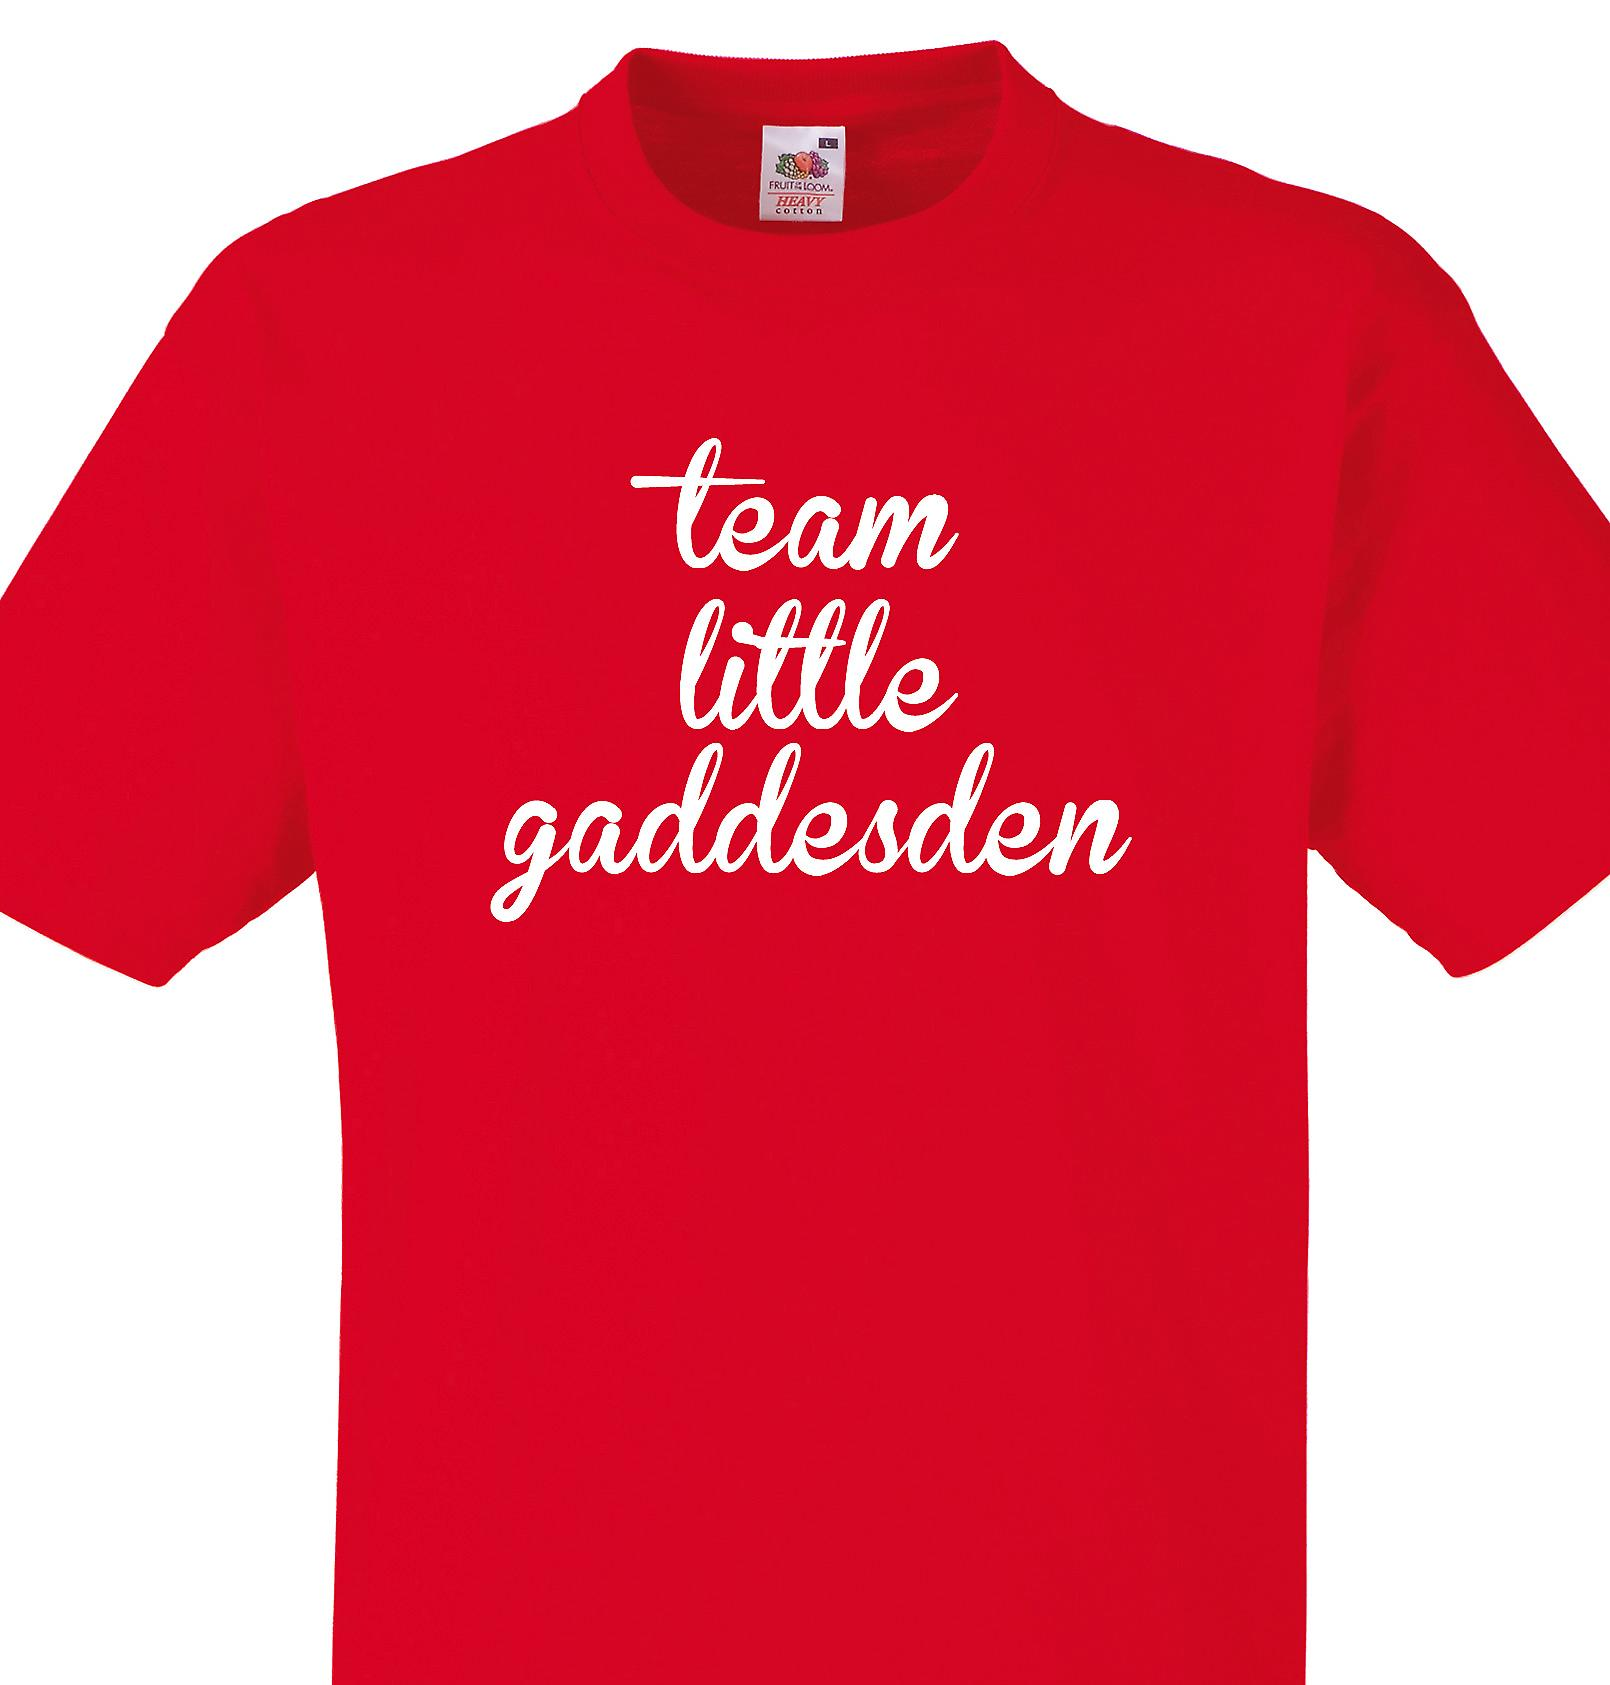 Team Little gaddesden Red T shirt